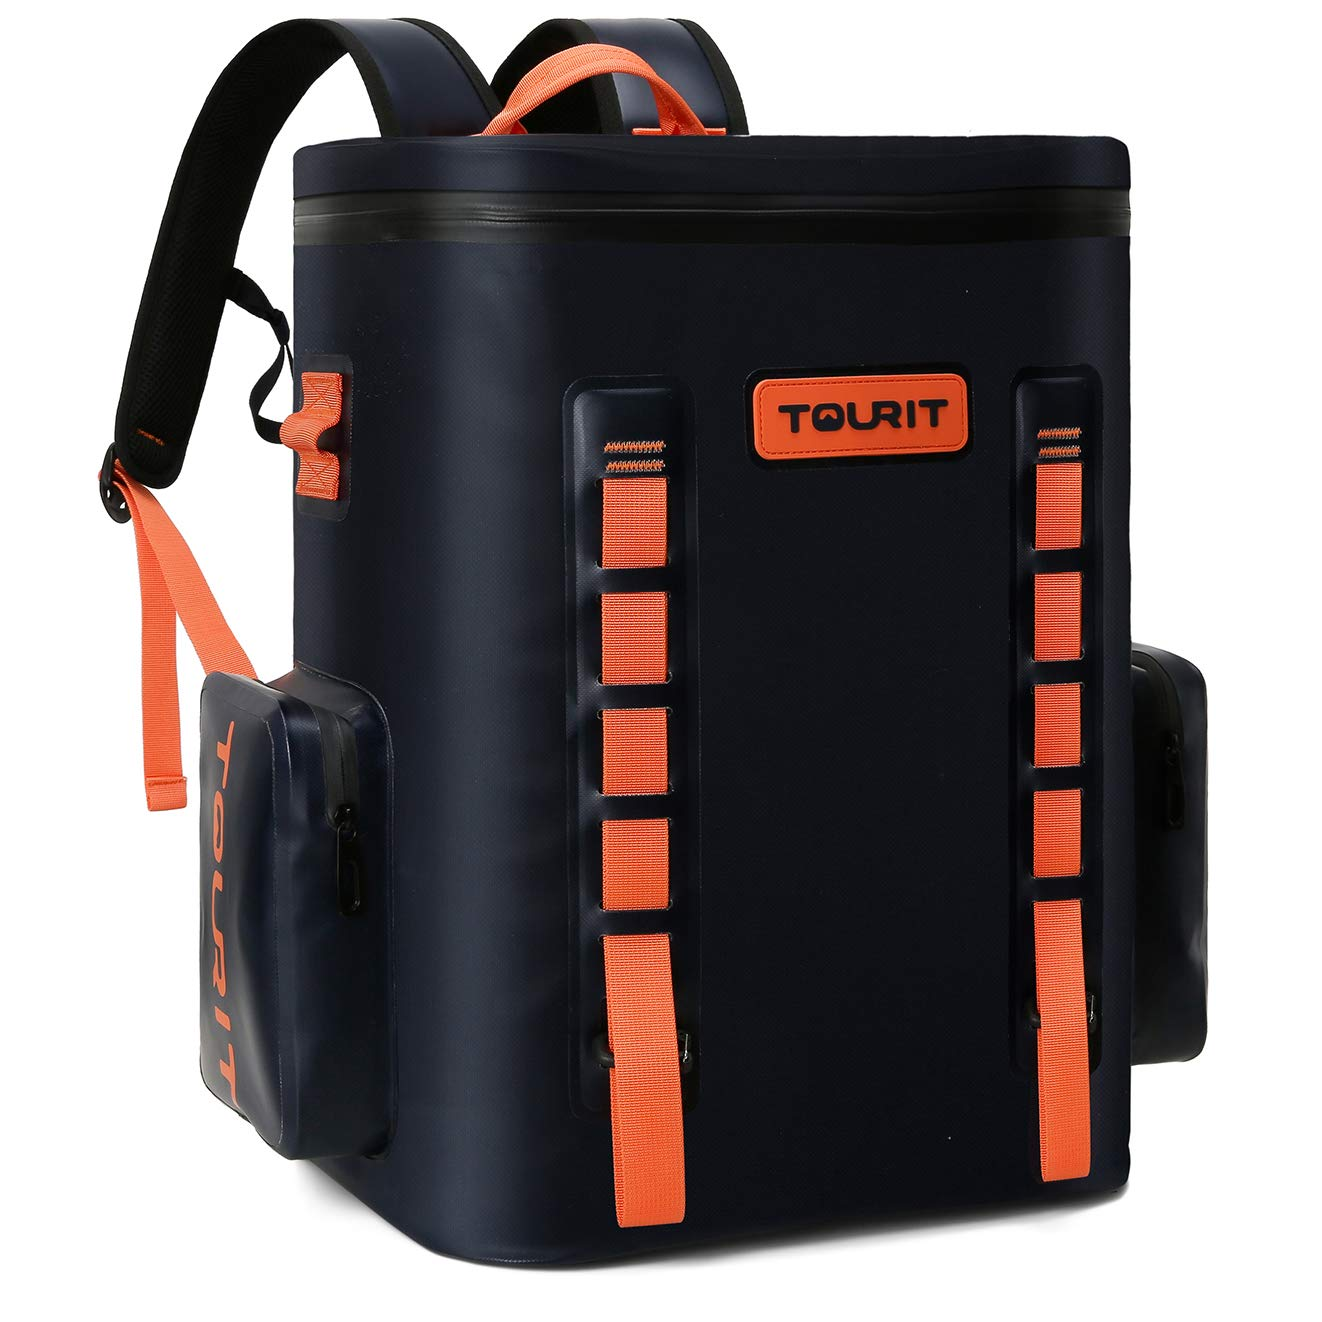 TOURIT Leak-Proof Soft Sided Cooler Backpack Waterproof Insulated Backpack Cooler Bag Large Capacity Backpack with Cooler for Men Women to Picnics, Camping, Hiking or Beach, 36 Cans by TOURIT